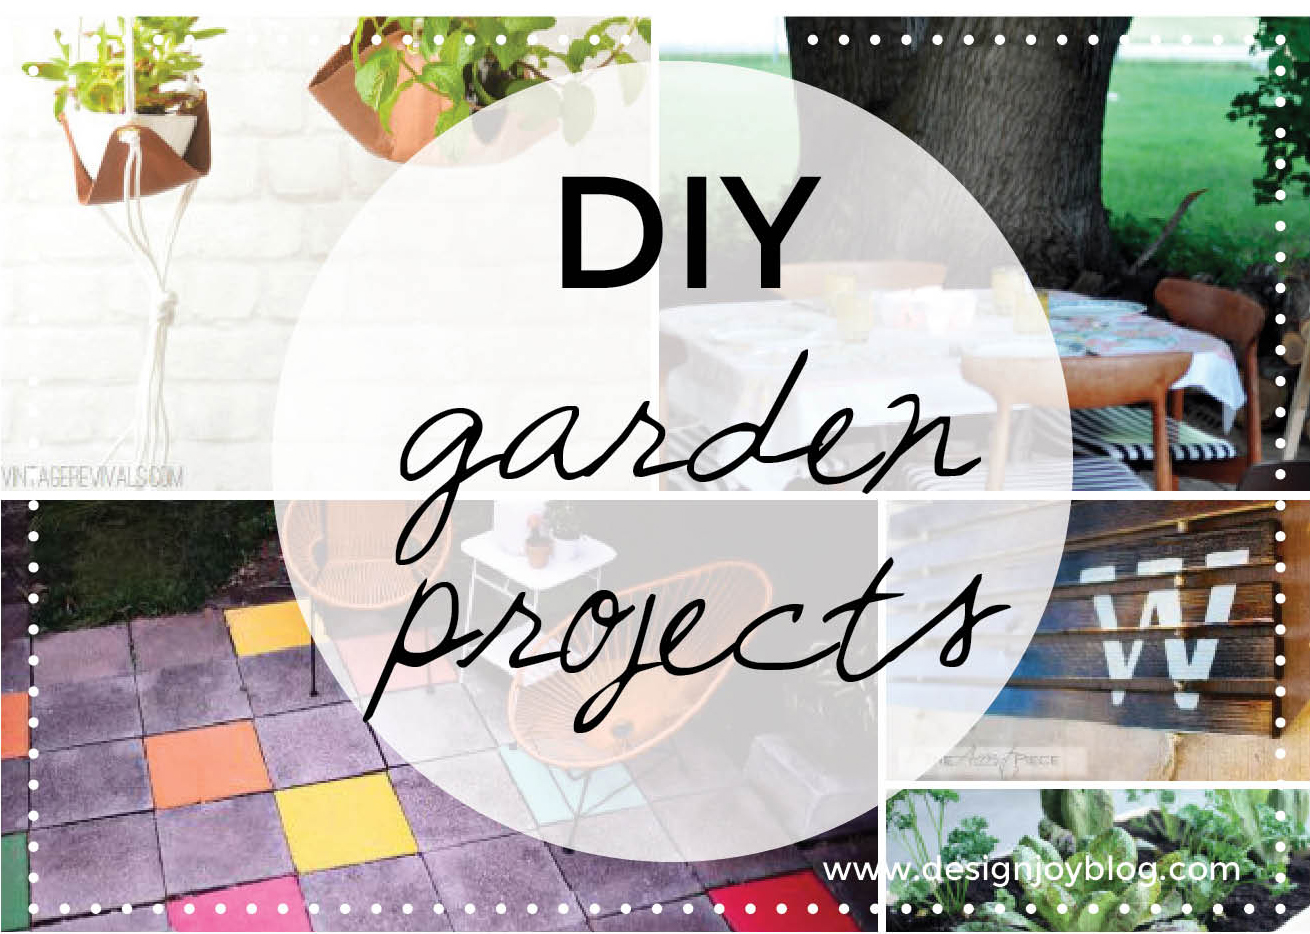 8 DIY projects for your garden Design Joy